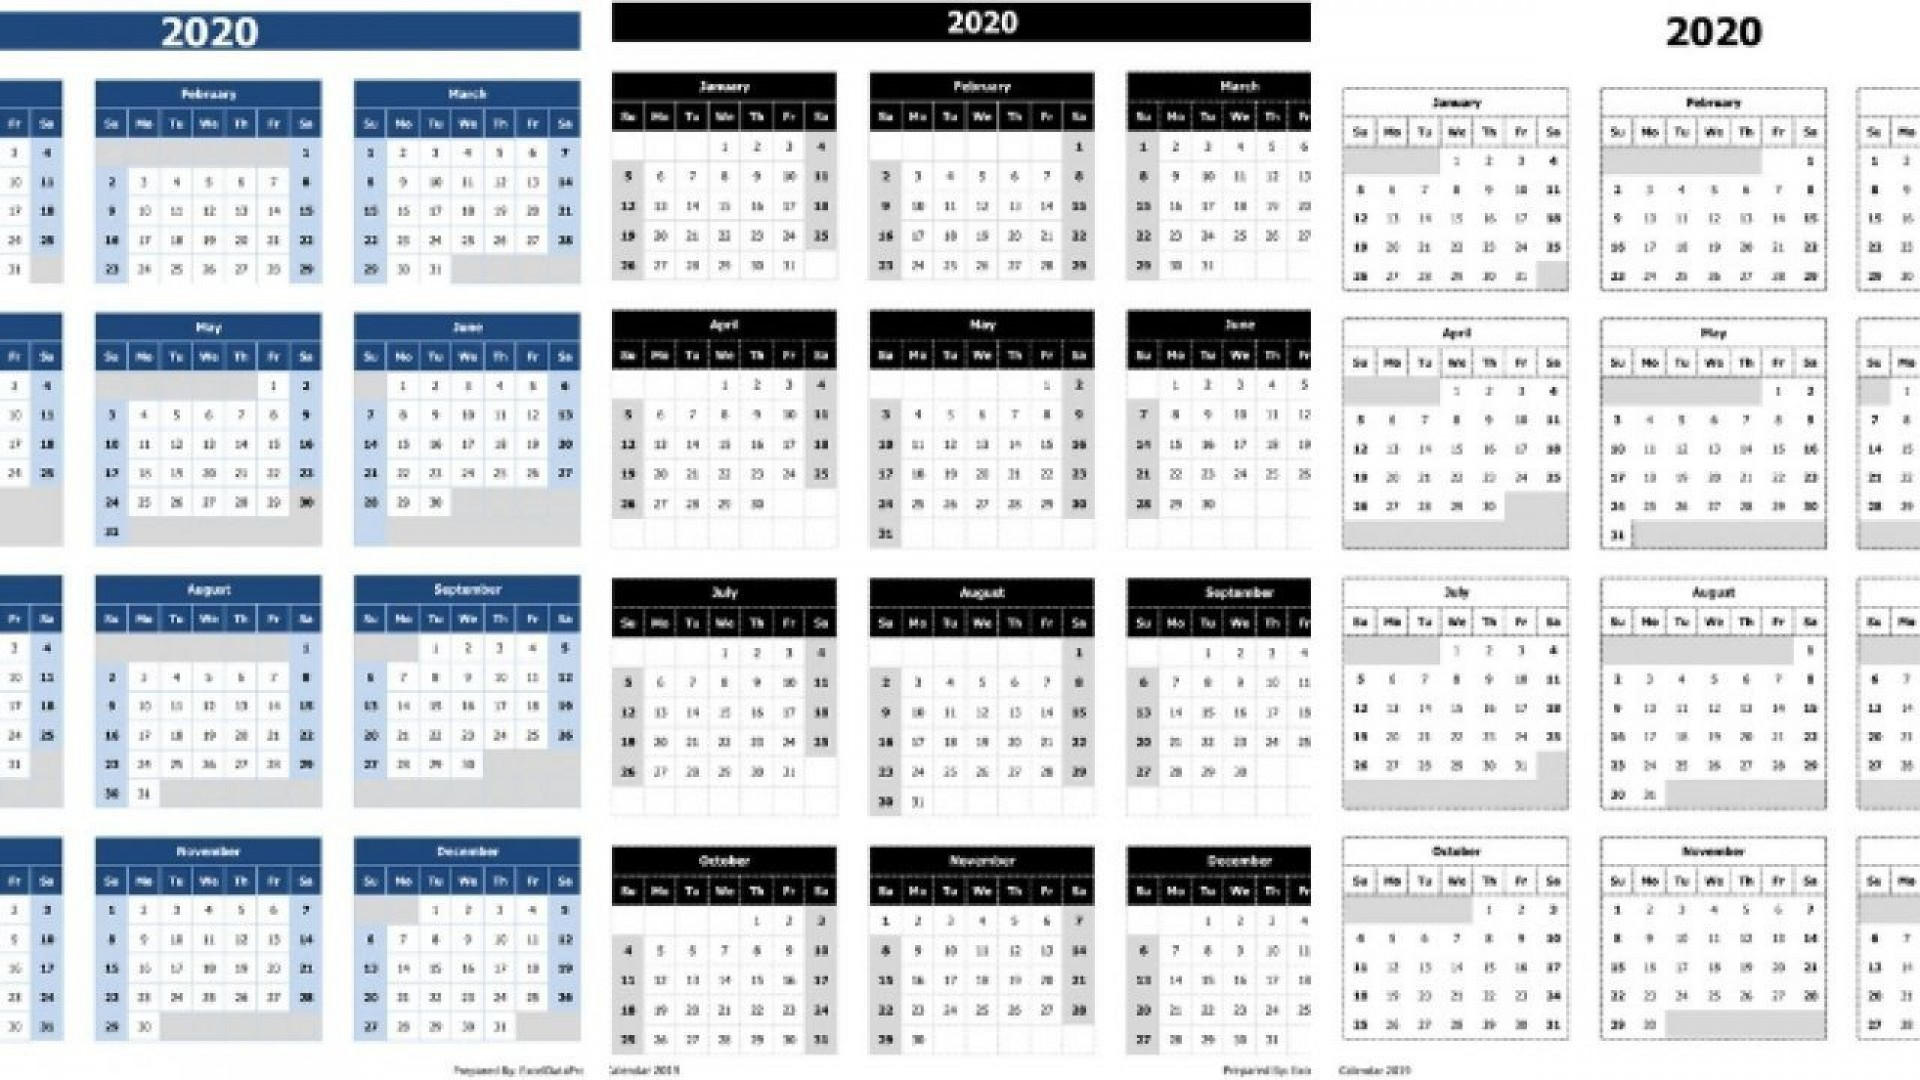 005 Fascinating 2020 Payroll Calendar Template Concept  Biweekly Canada Free Excel1920